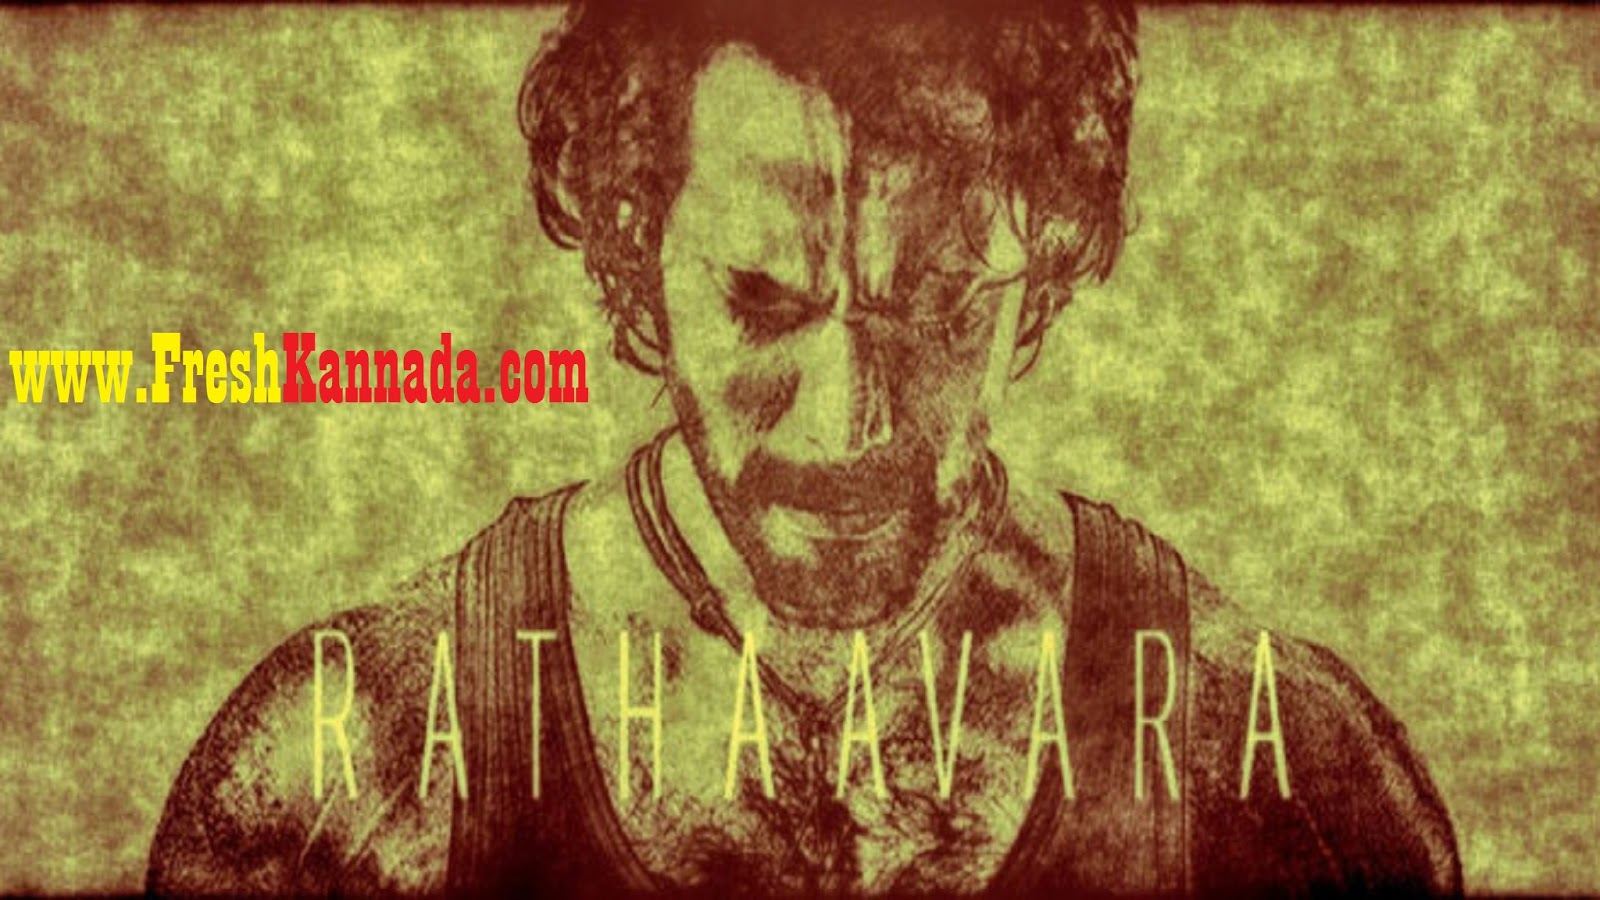 Rathaavara (2015) Kannada Movie Ringtones Free Download